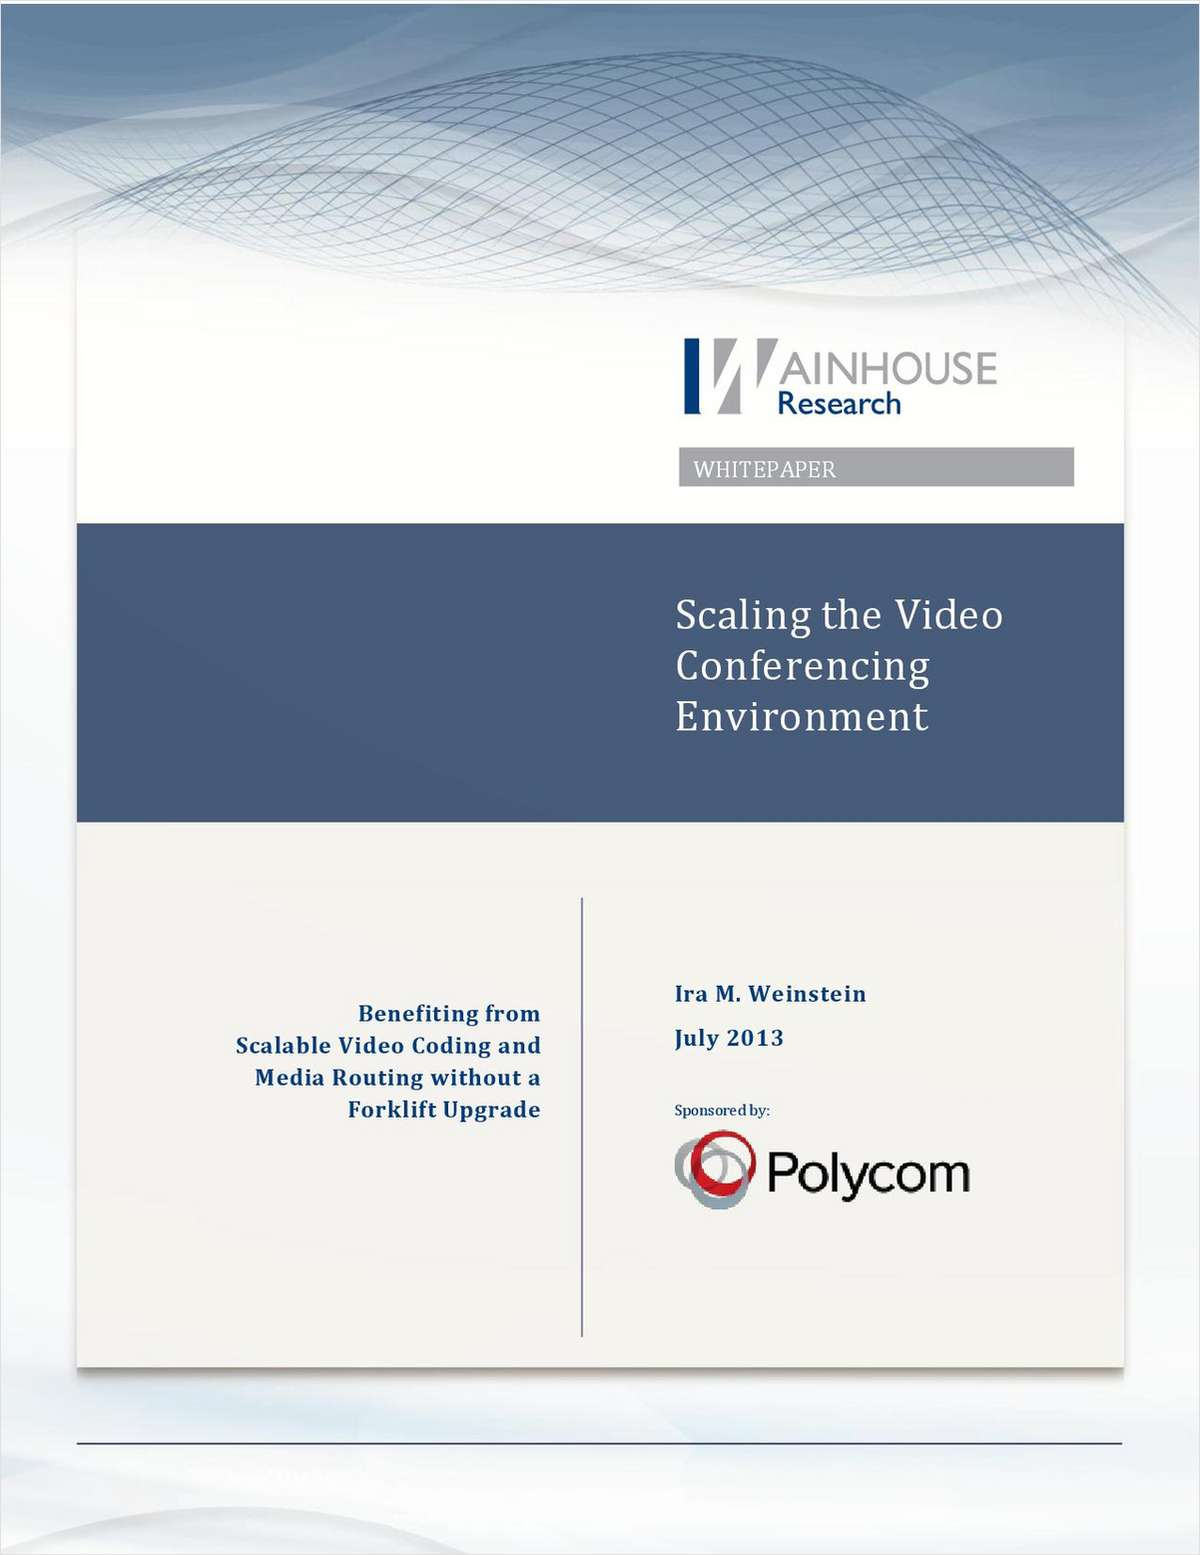 Scaling the Video Conferencing Environment